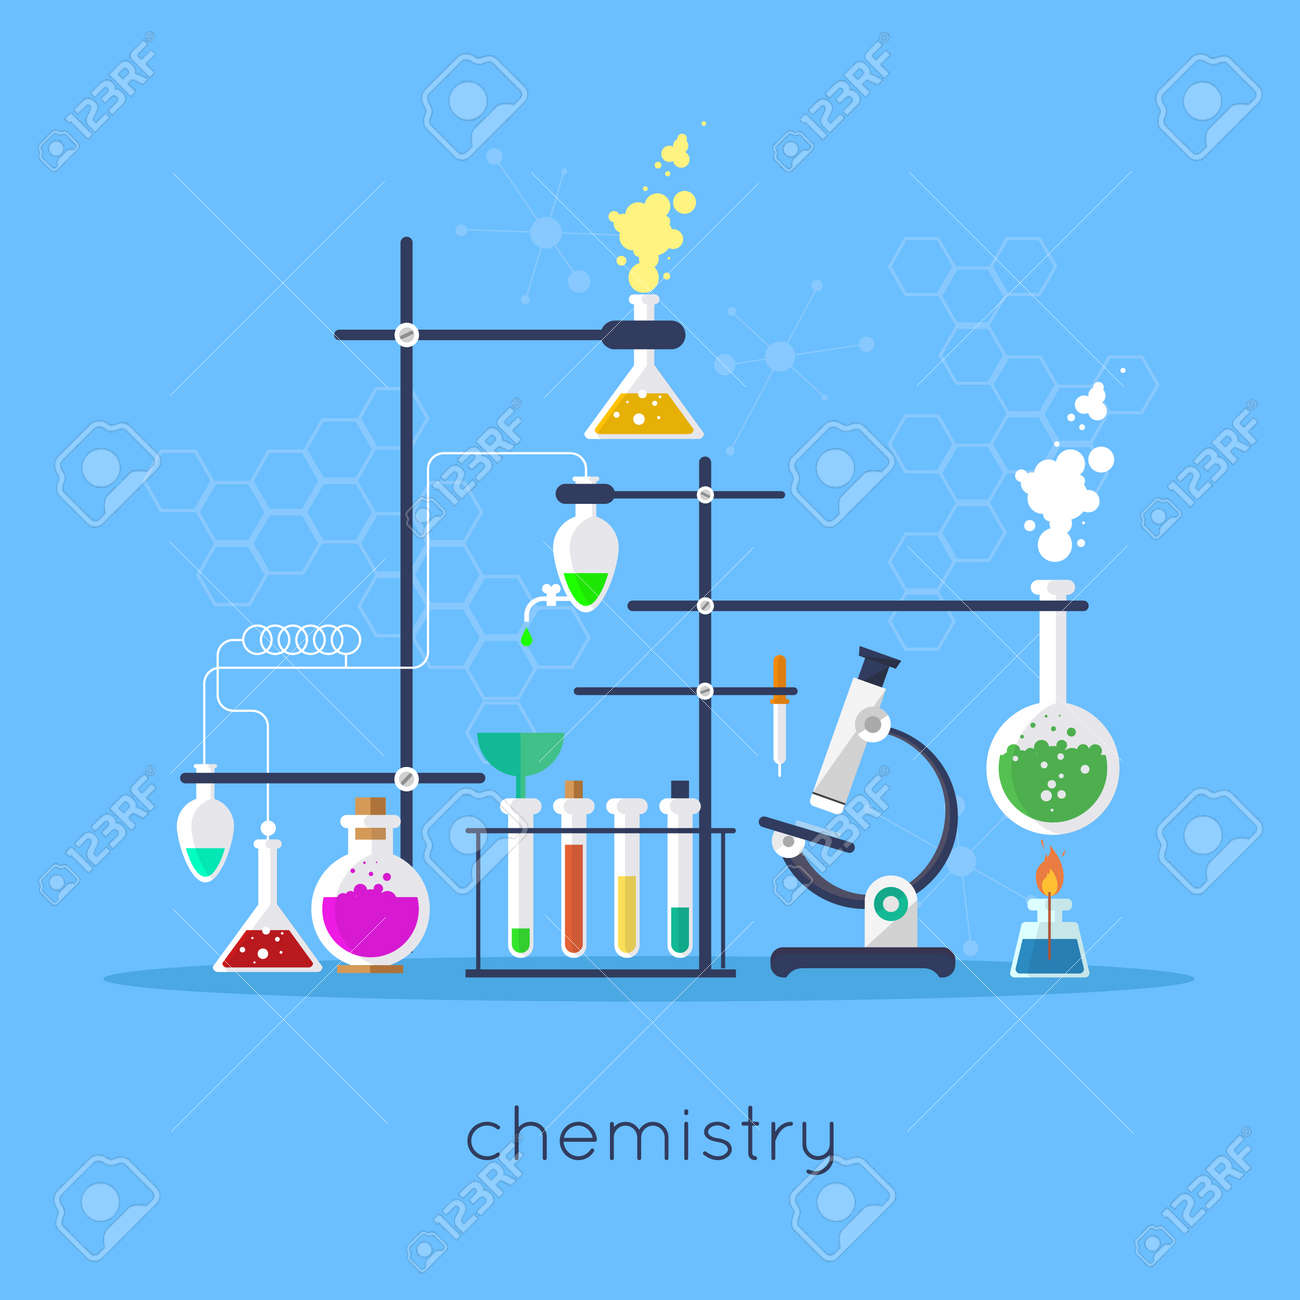 Chemistry laboratory workspace and science equipment concept flat chemistry laboratory workspace and science equipment concept flat design vector illustration imagens 42289670 ccuart Gallery